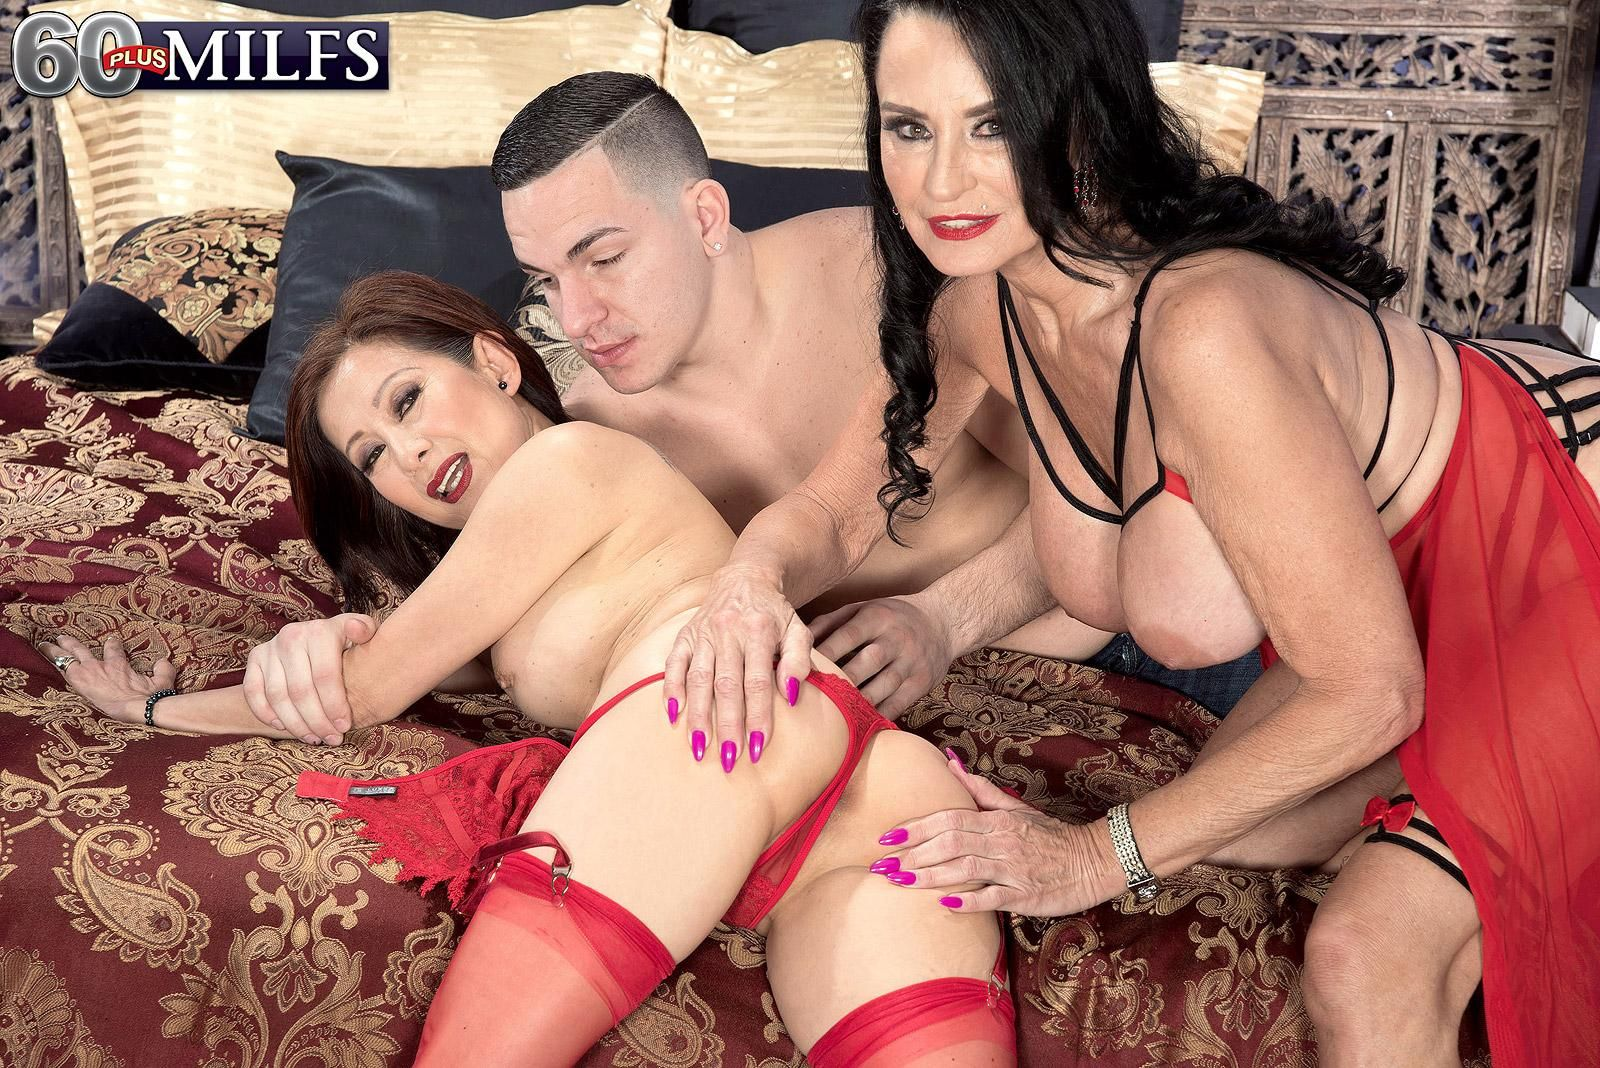 Horny grannies Rita Daniels and Kim Anh have a threesome with a younger boy